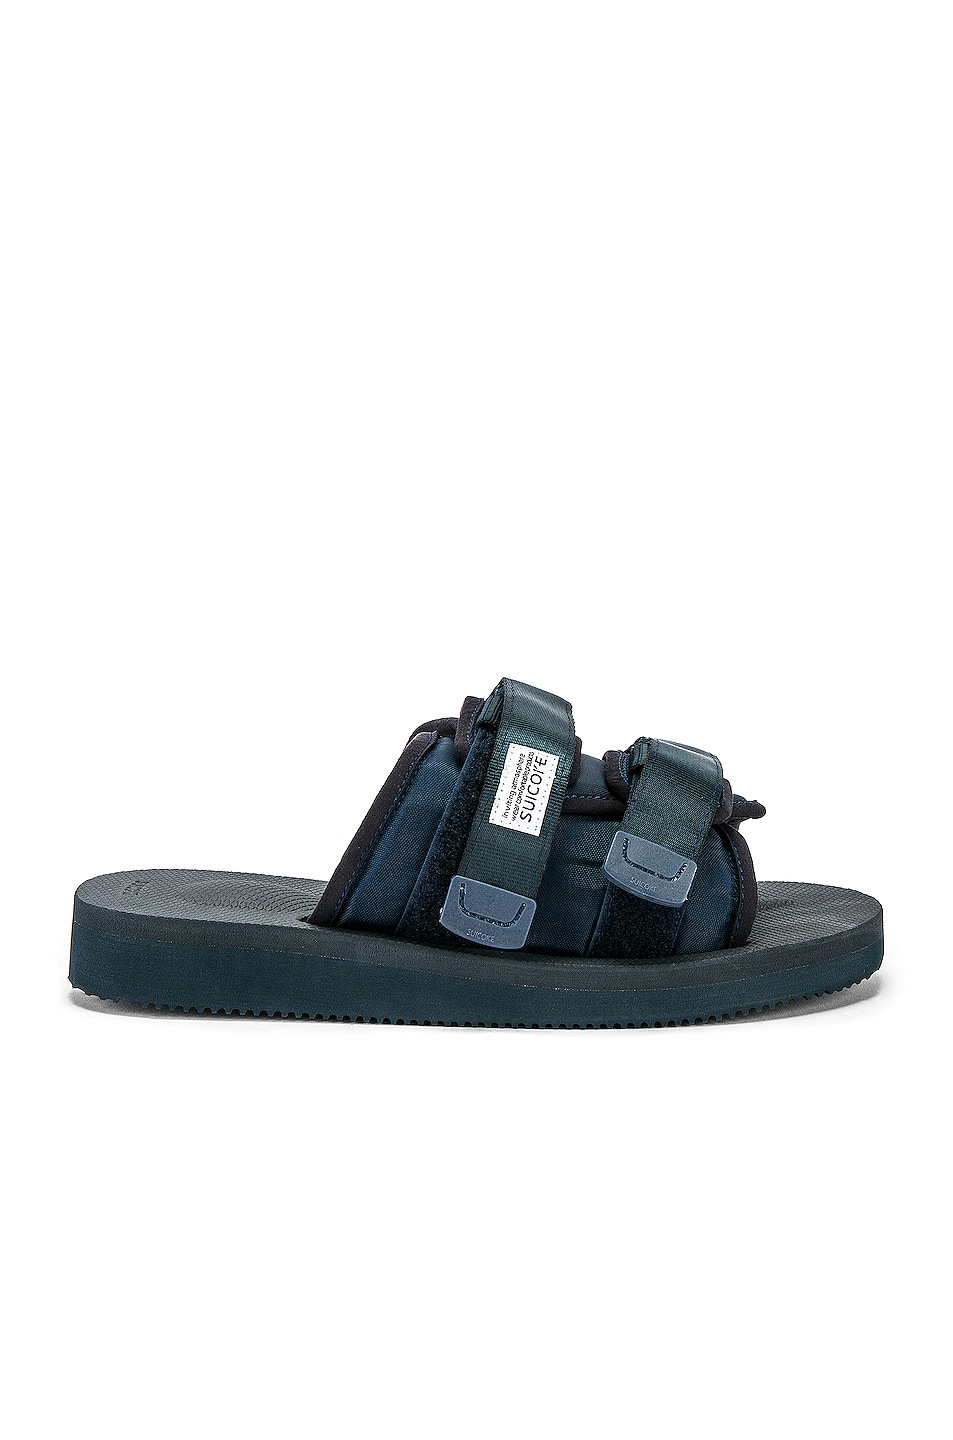 cheap best prices free shipping cheap price Suicoke The Chloe EZBJHrm